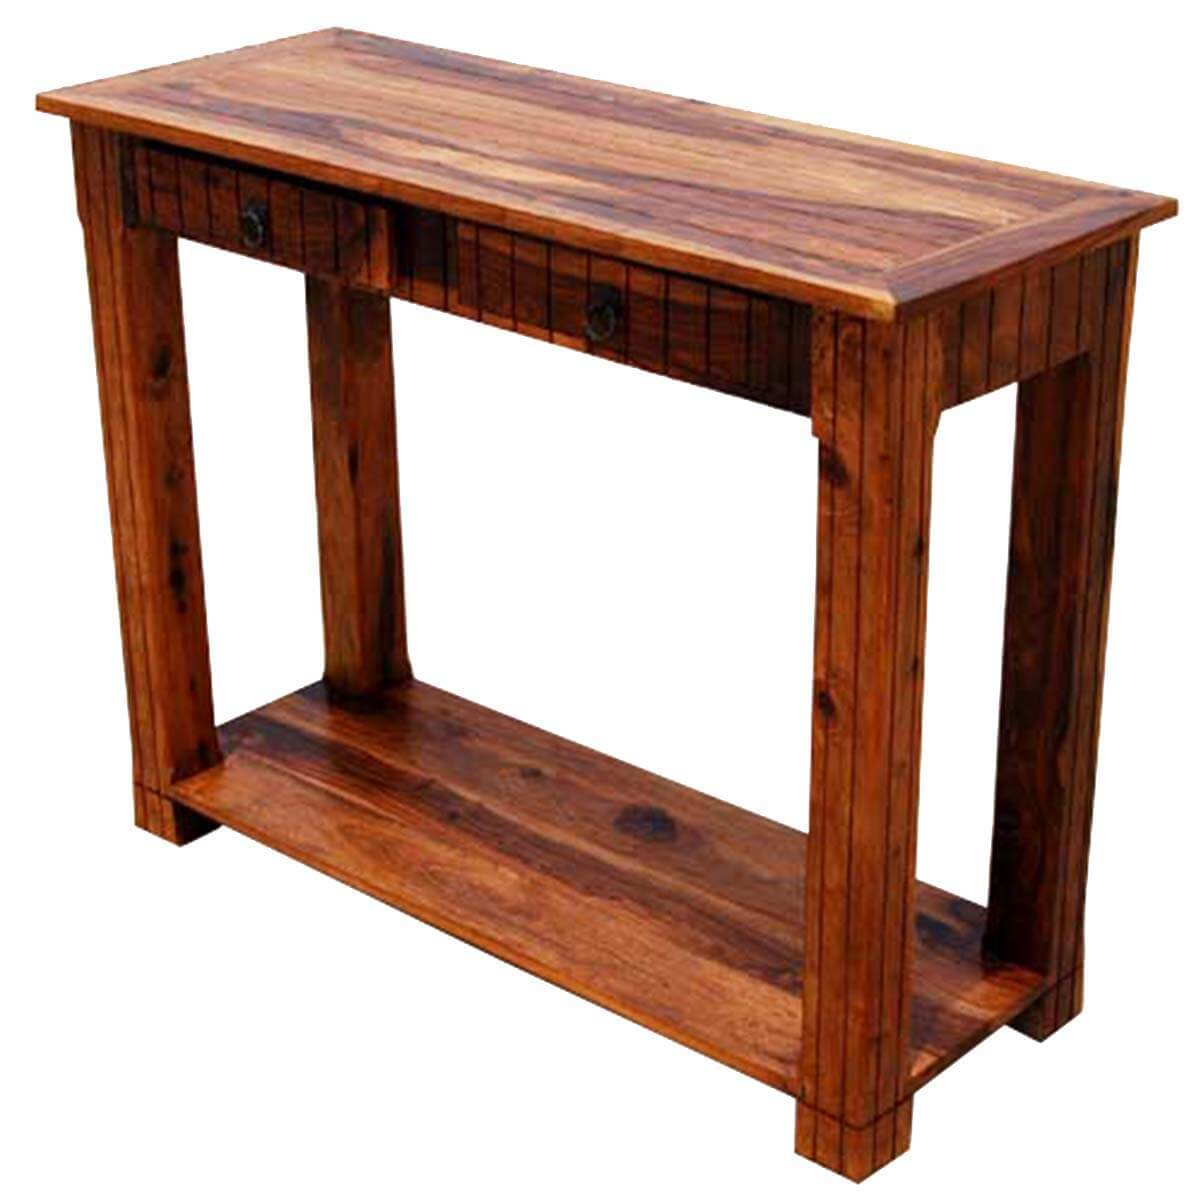 Superb img of Solid Wood 2 Storage Drawer Sofa Entryway Console Table with #B48317 color and 1200x1200 pixels